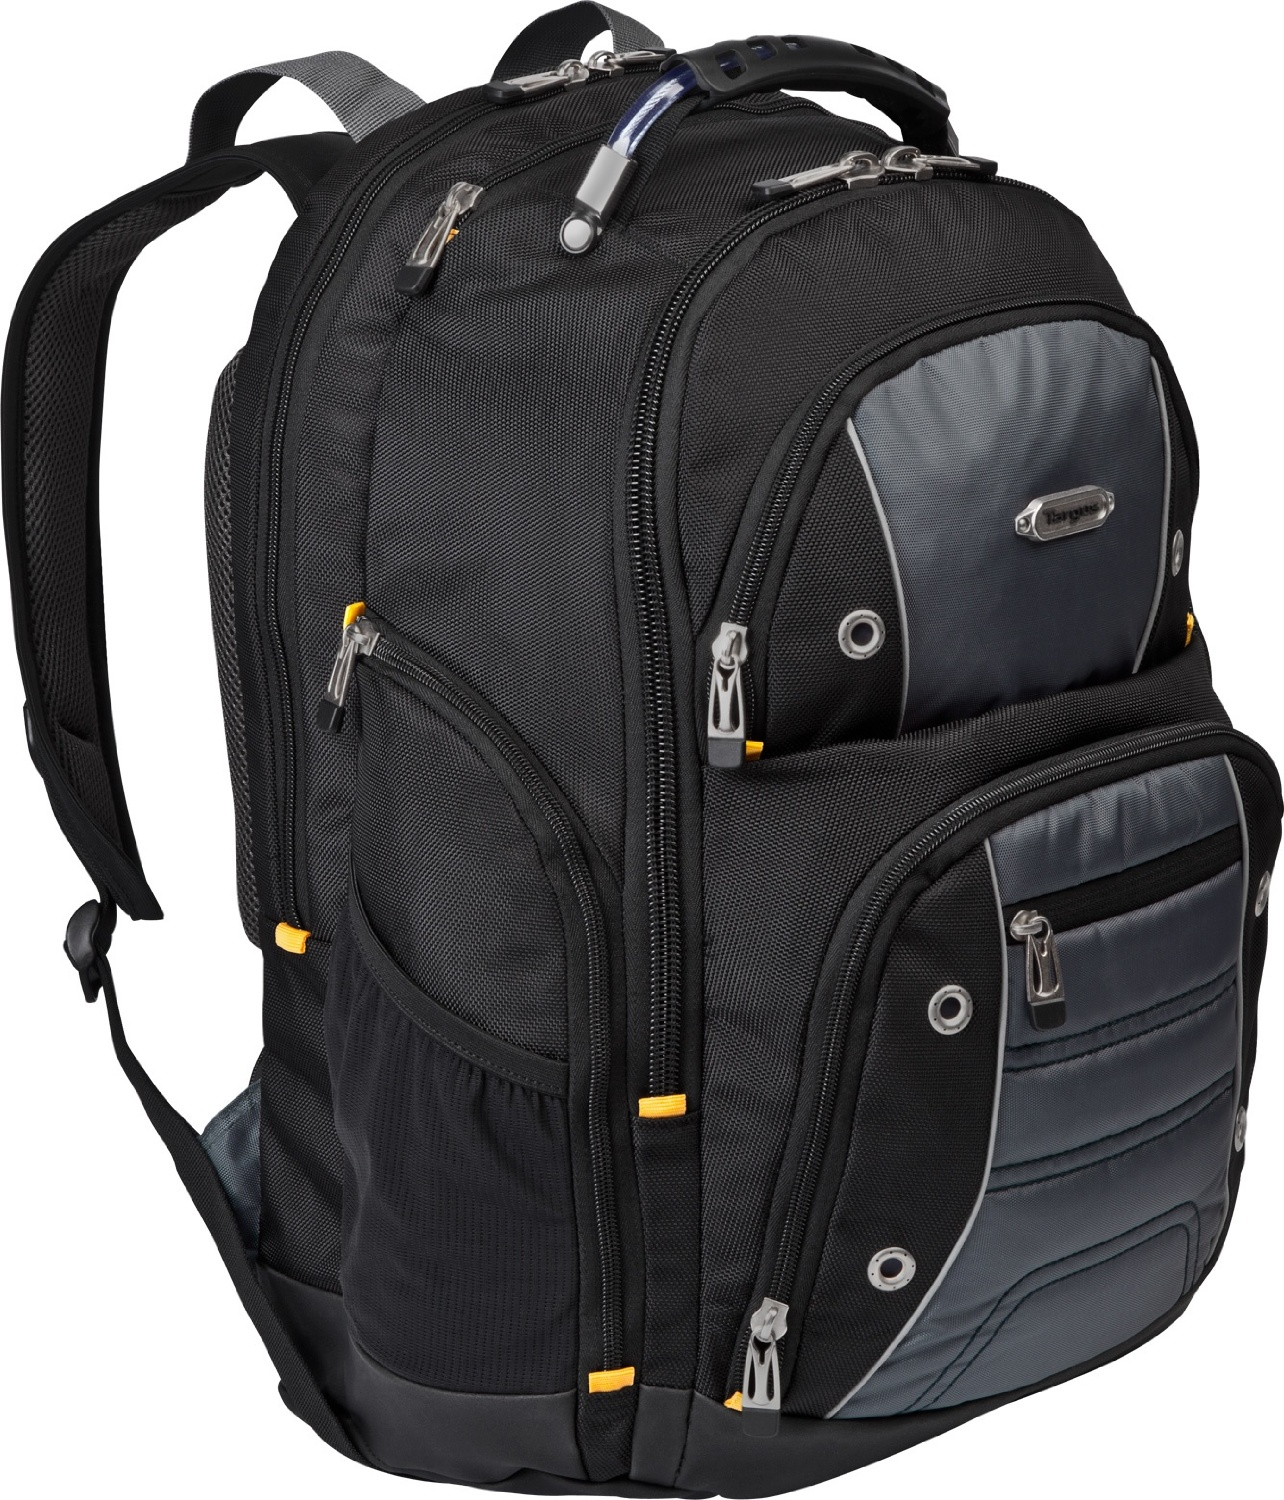 Best Computer Backpack akk2FIfs